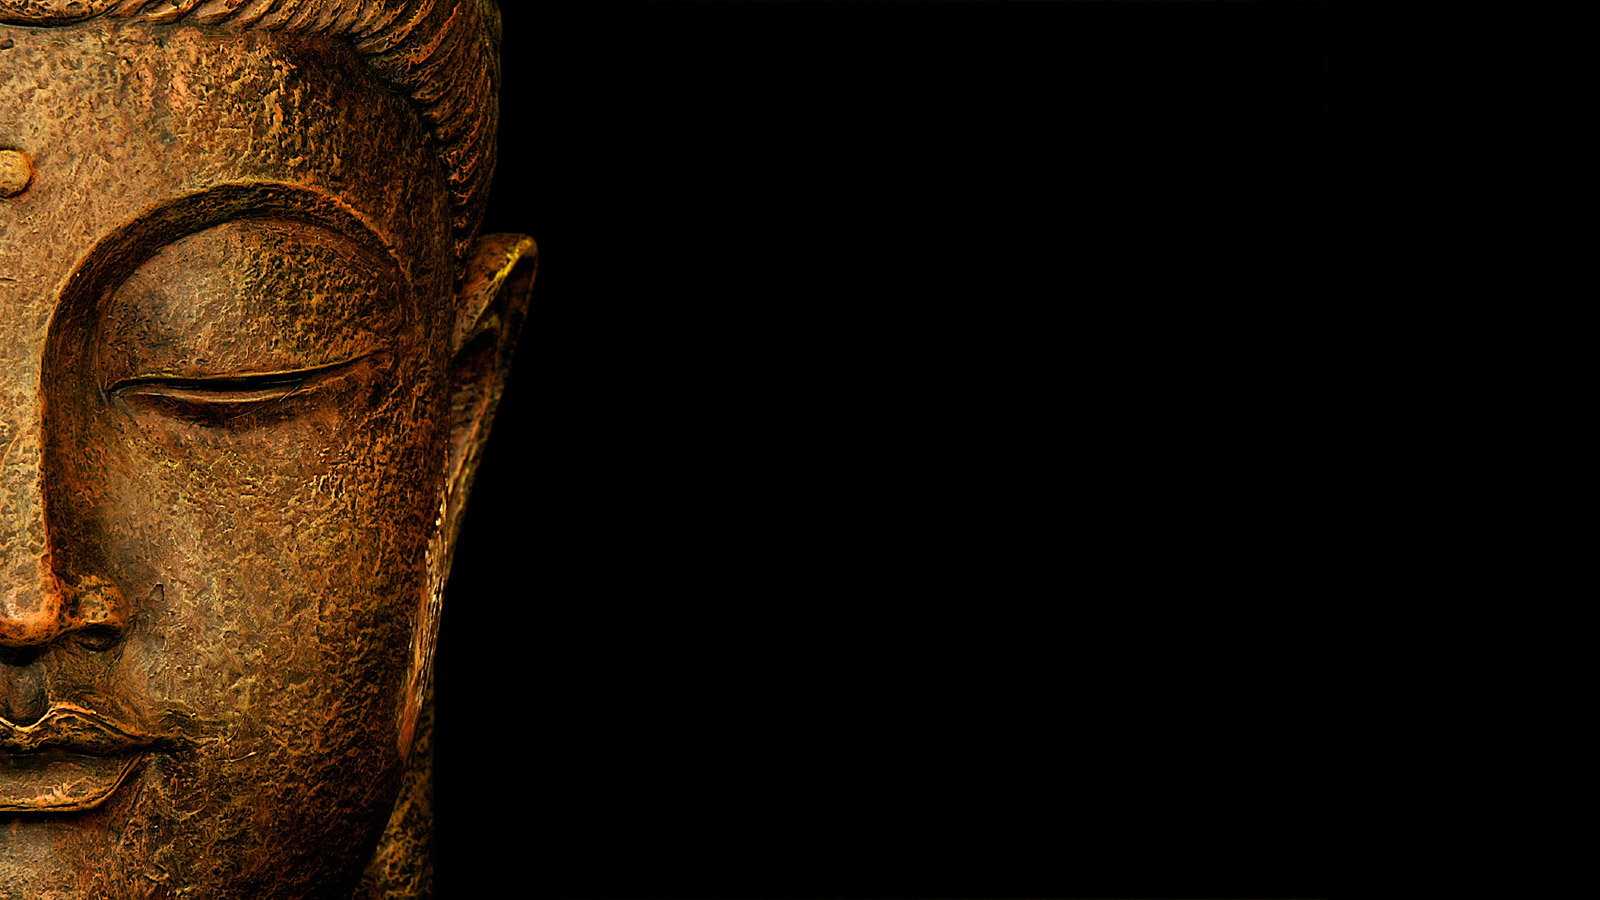 DOWNLOAD Buddha Siddhartha Gotama Awareness and Meditation Wallpaper 1600x900